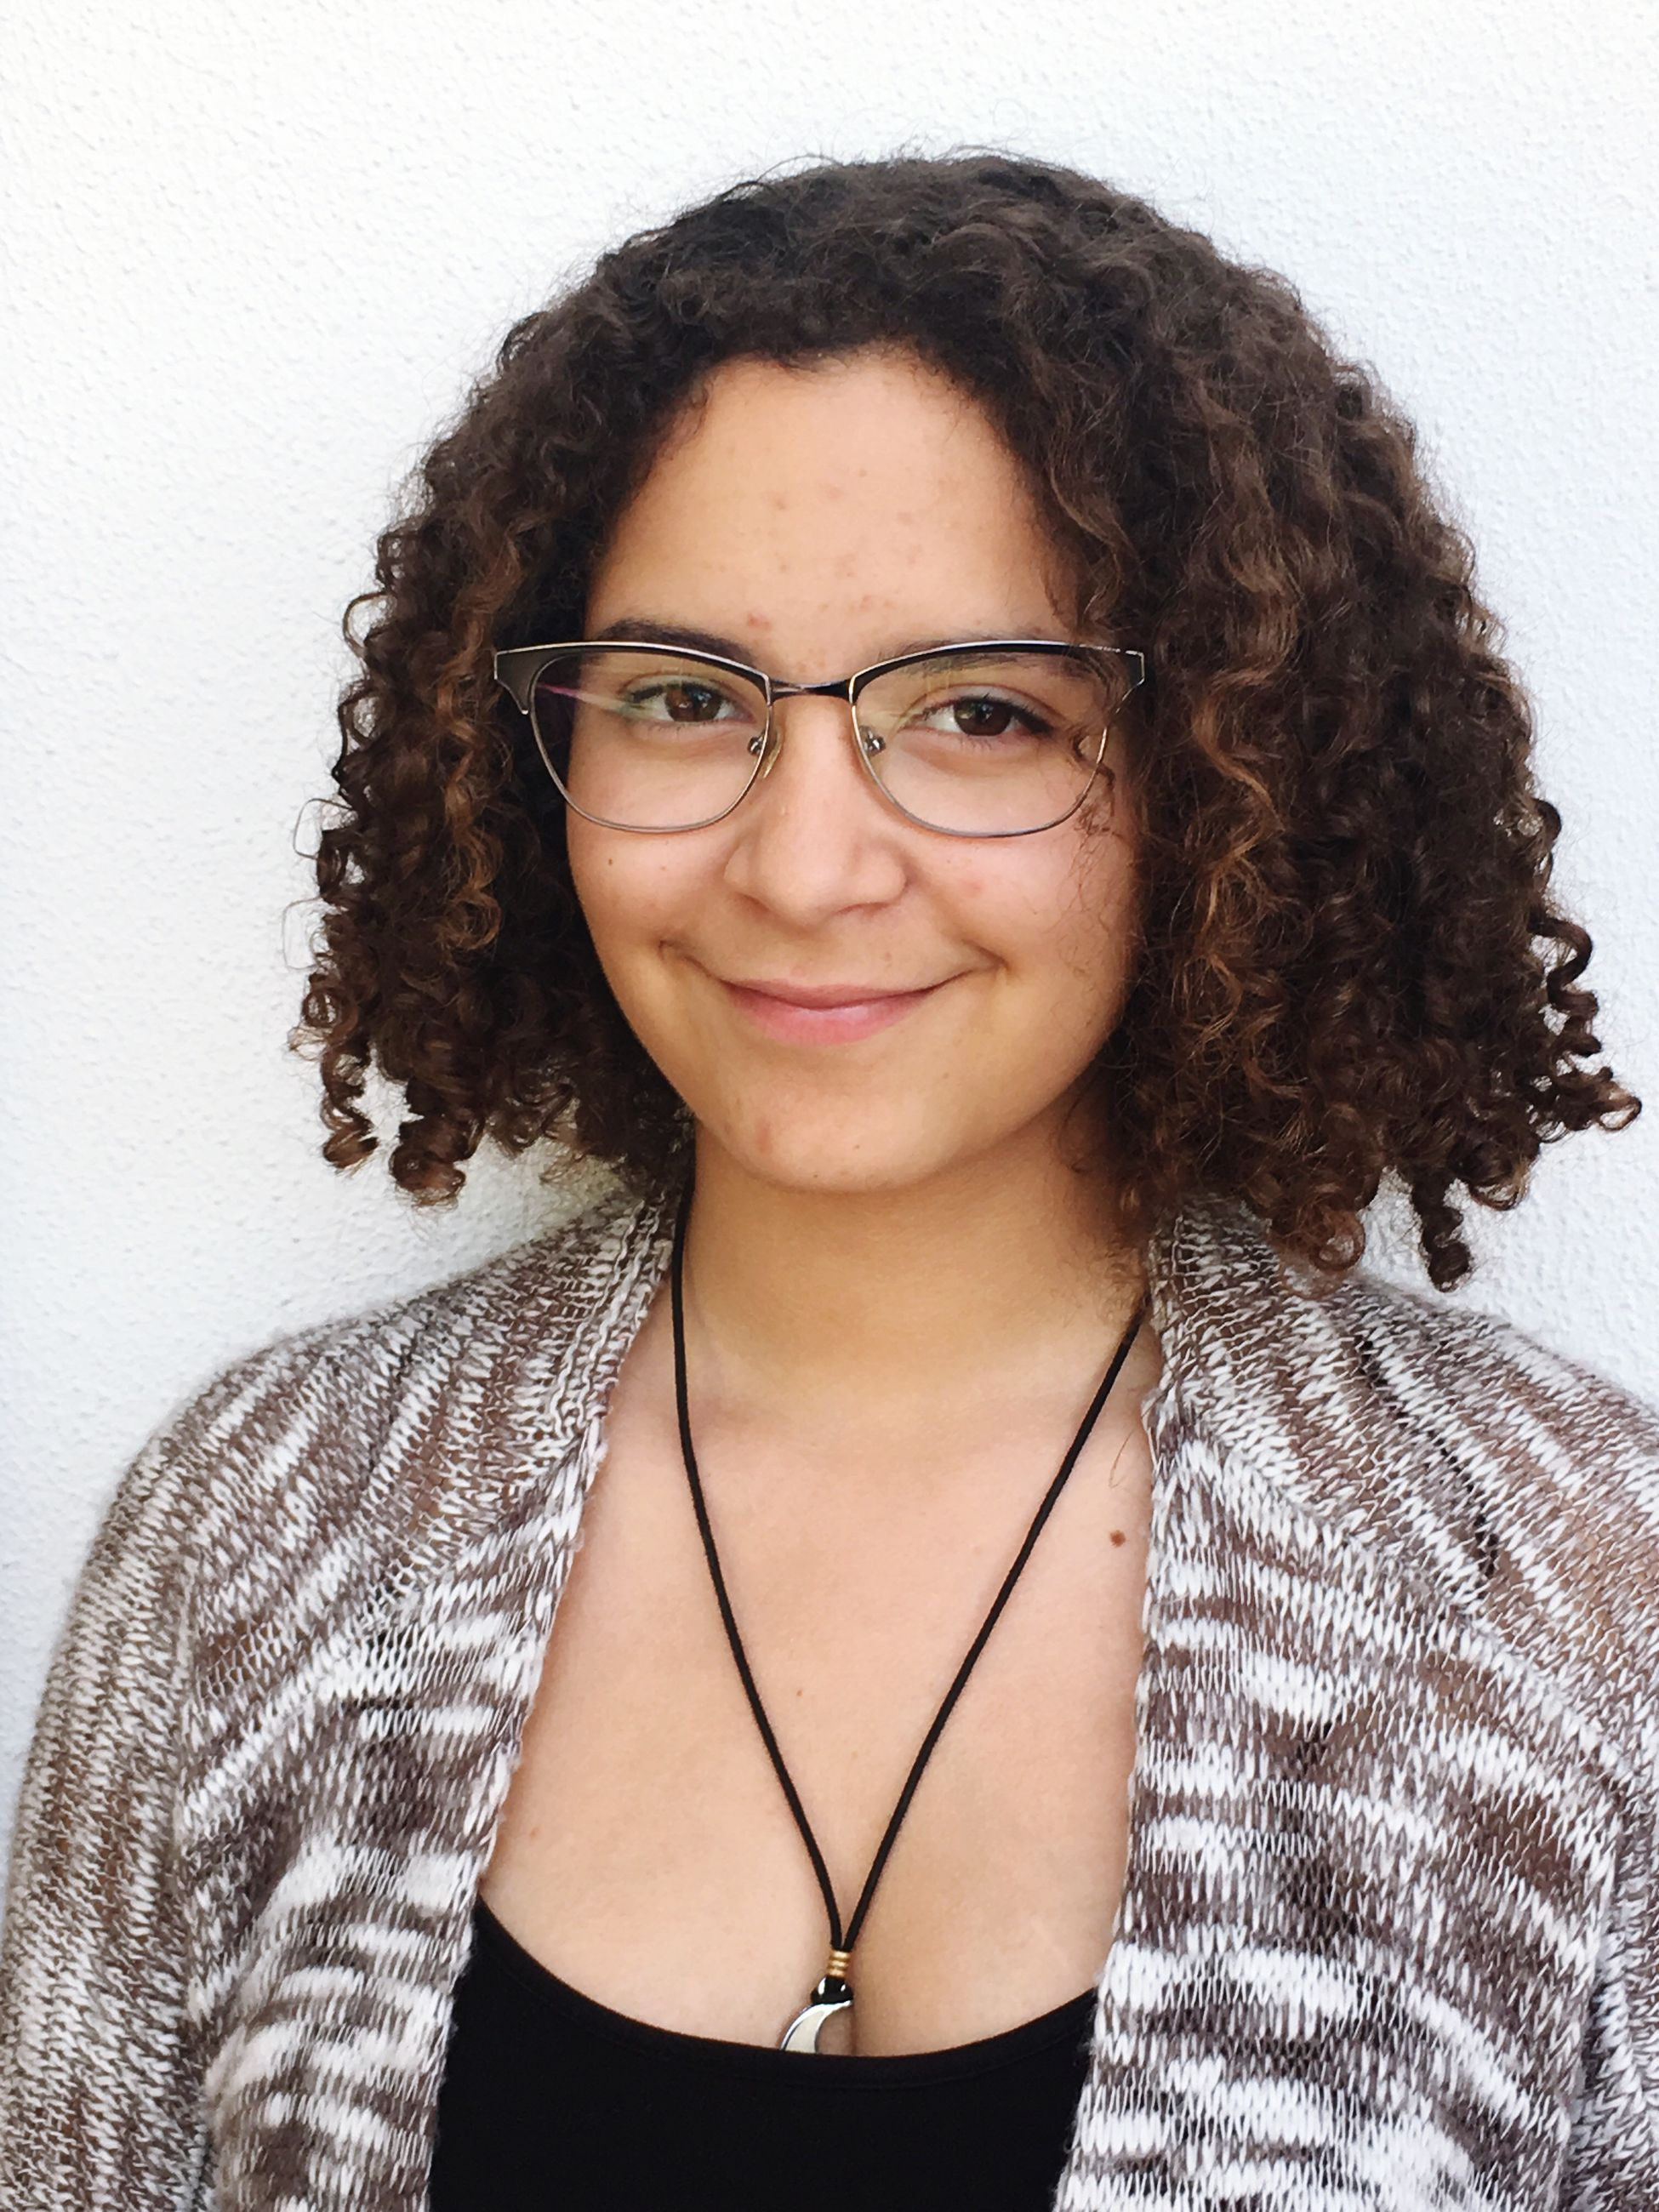 portrait, looking at camera, white background, confidence, eyeglasses, one person, young adult, one woman only, adults only, smiling, real people, people, young women, beautiful woman, adult, curly hair, one young woman only, only women, day